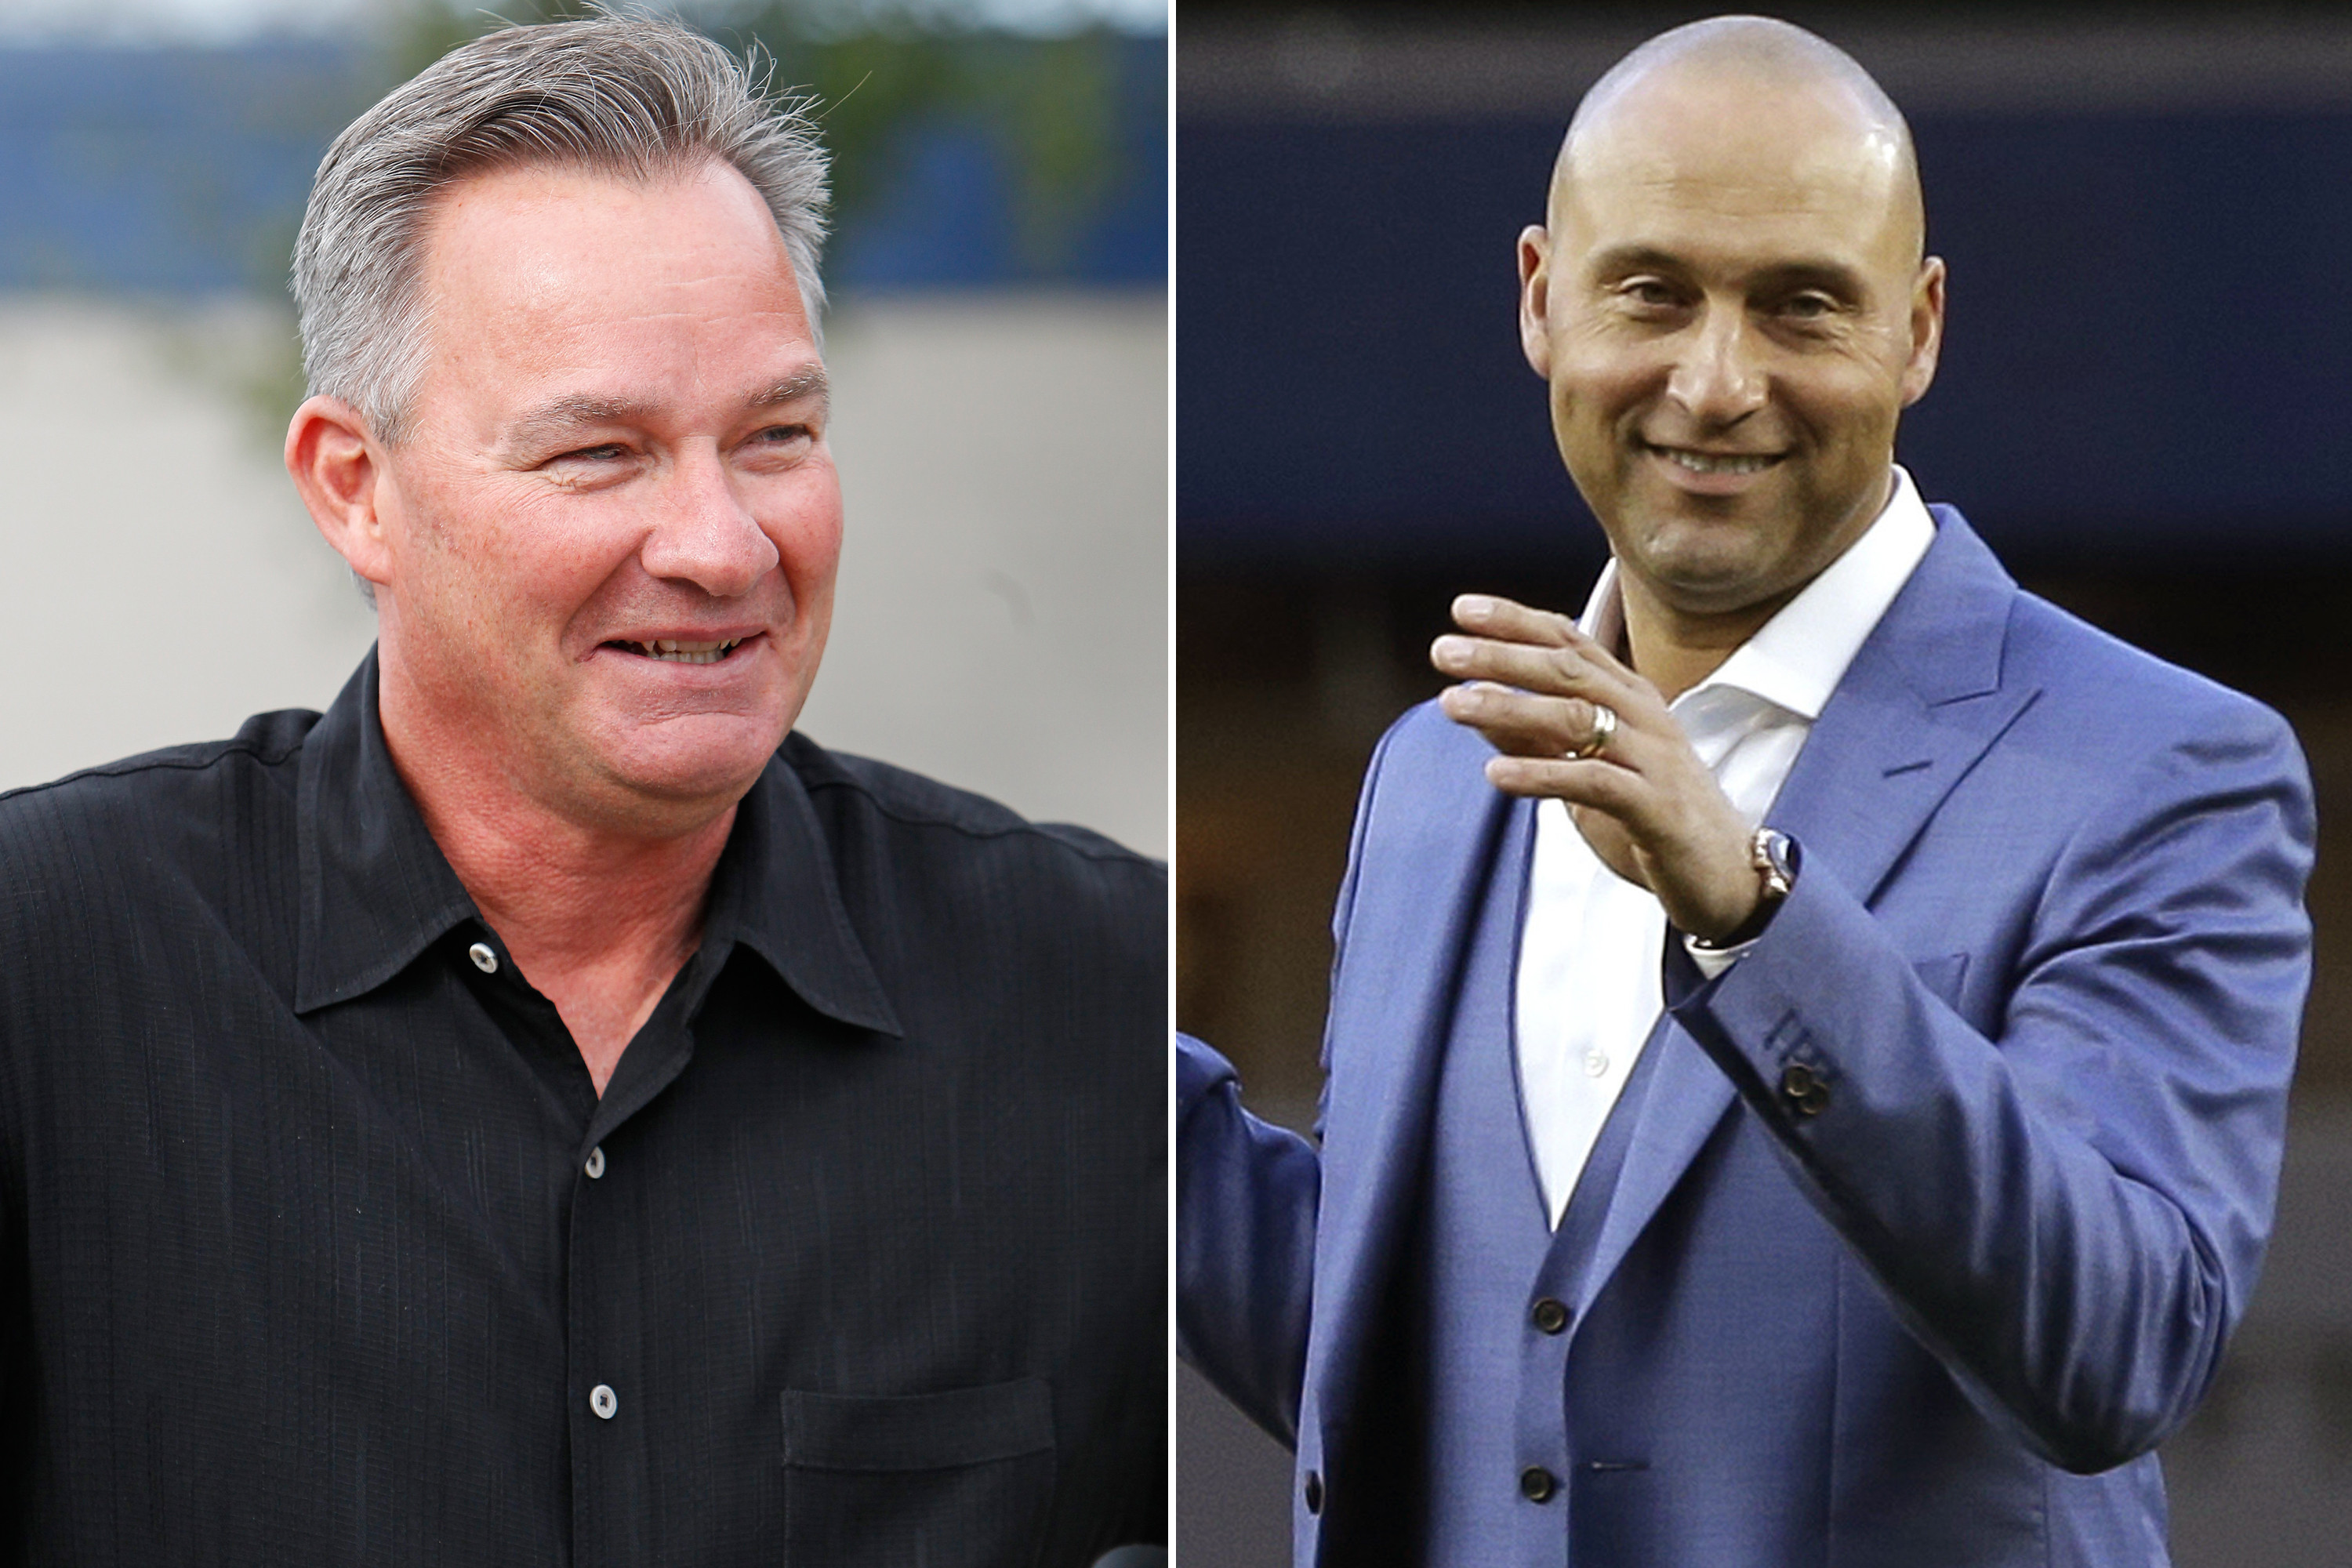 Derek Jeter lands Gary Denbo from Yankees as 1st major hire